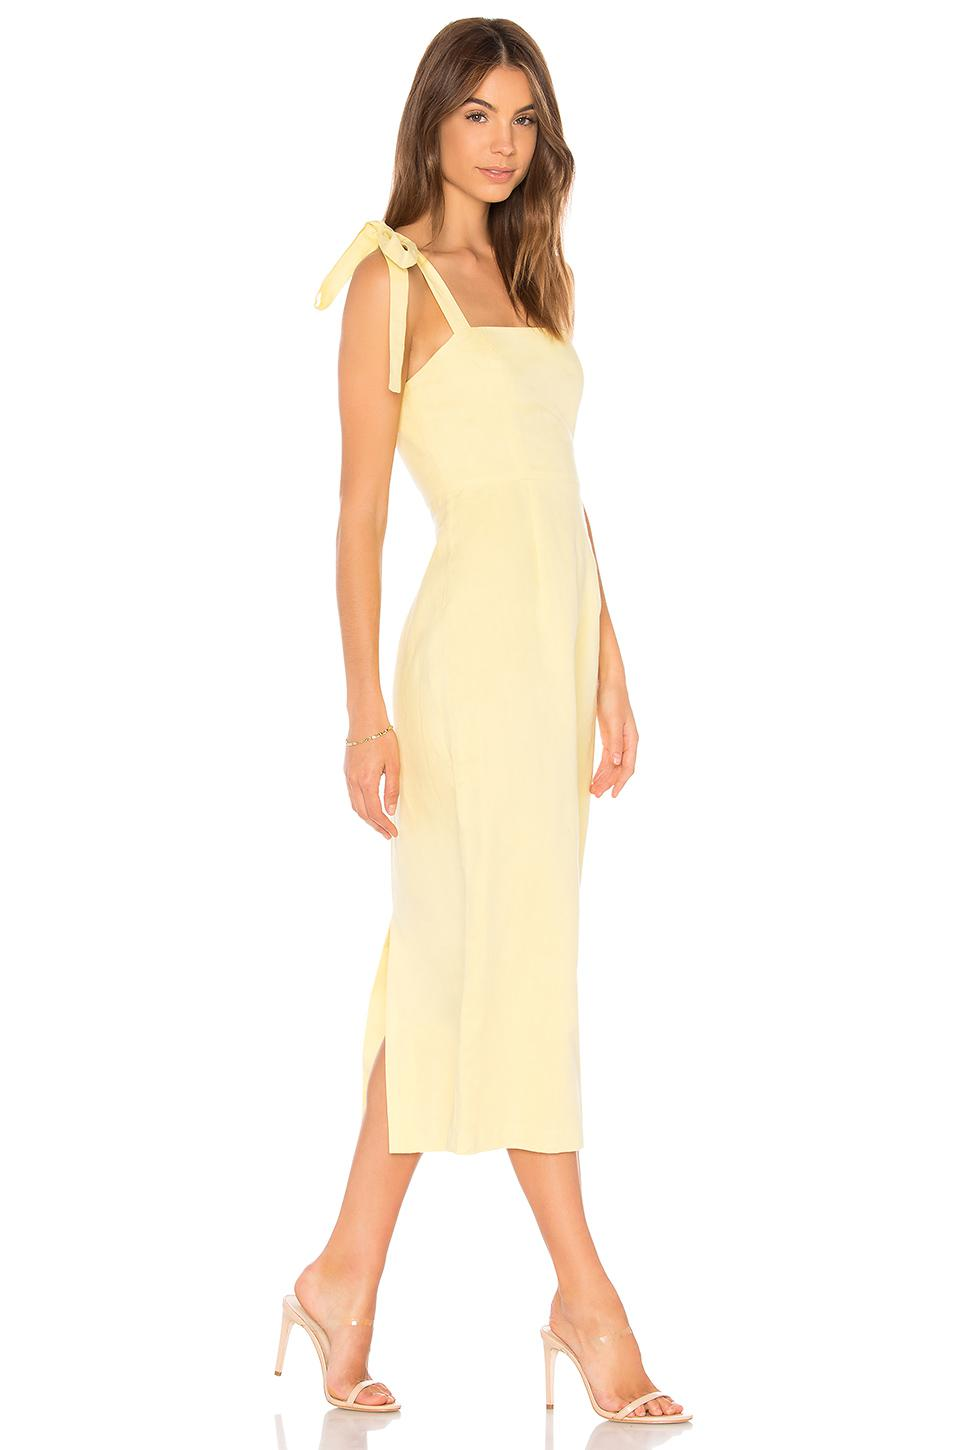 2c0700598d9d Gallery. Previously sold at: REVOLVE · Women's Midi Dresses ...